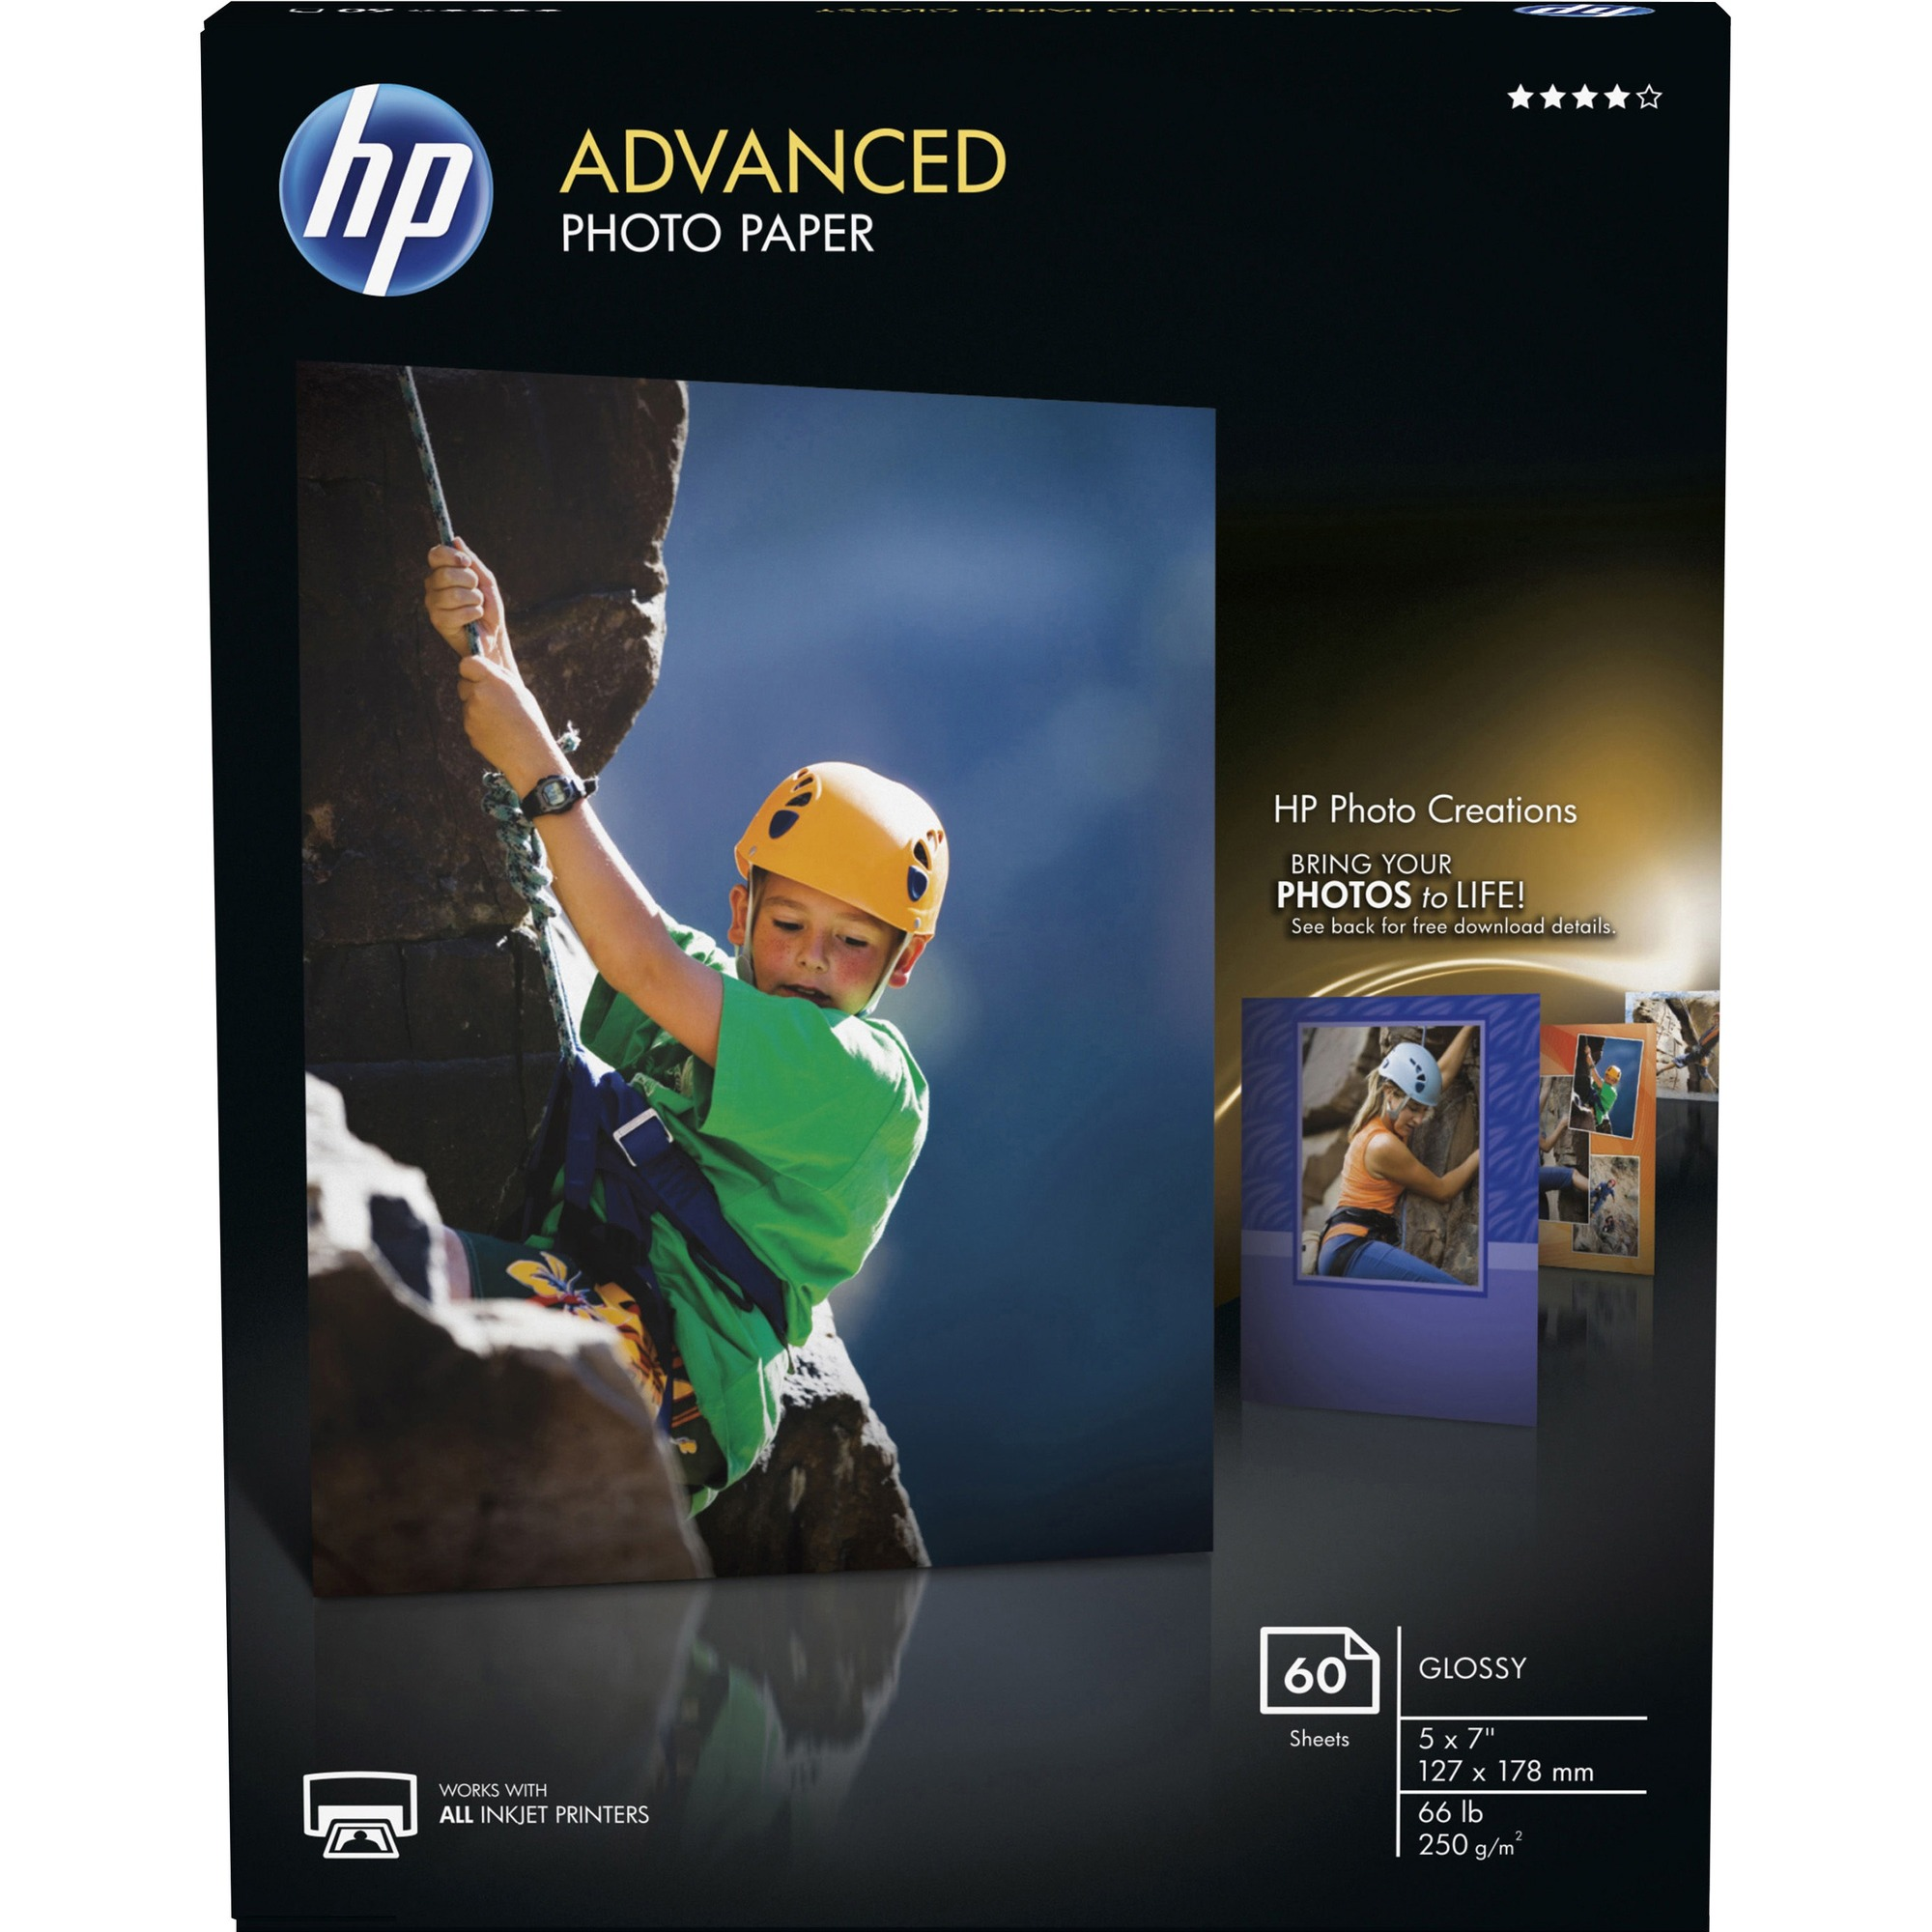 HP Advanced Photo Paper - 5 x 7 - 66 lb Basis Weight - Glossy - 60 / Pack -  White